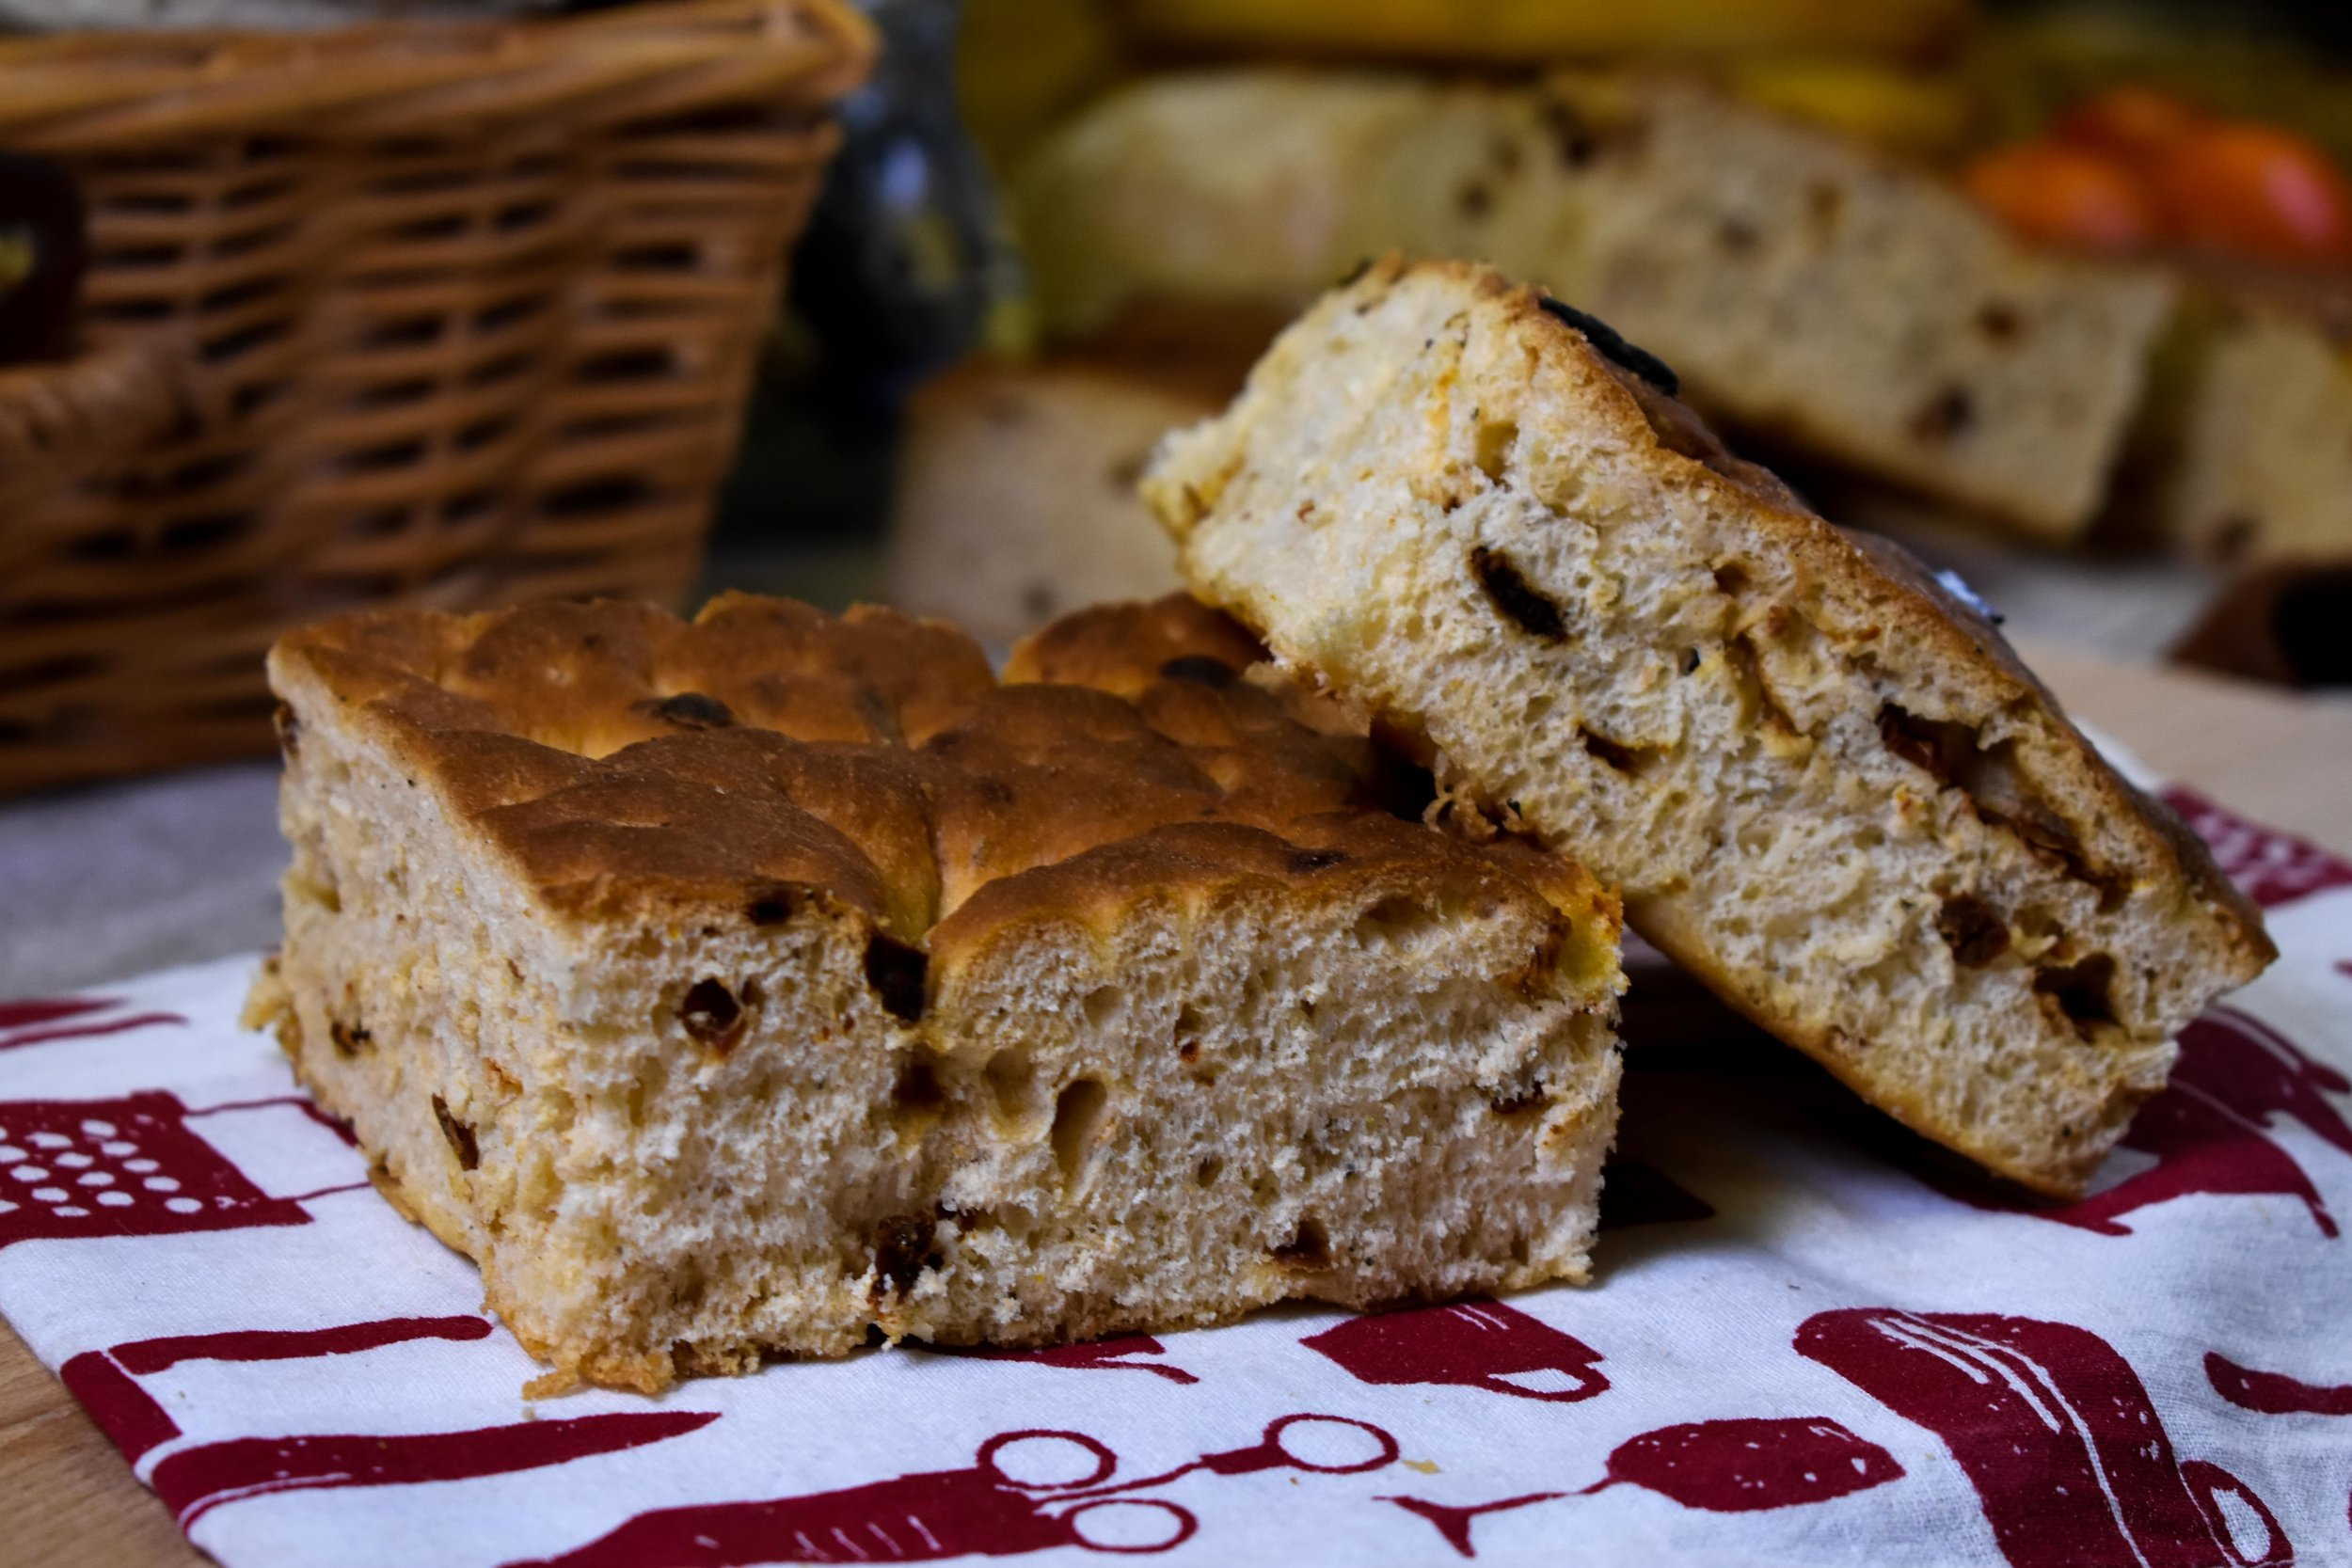 Fosters Bakery Focaccia